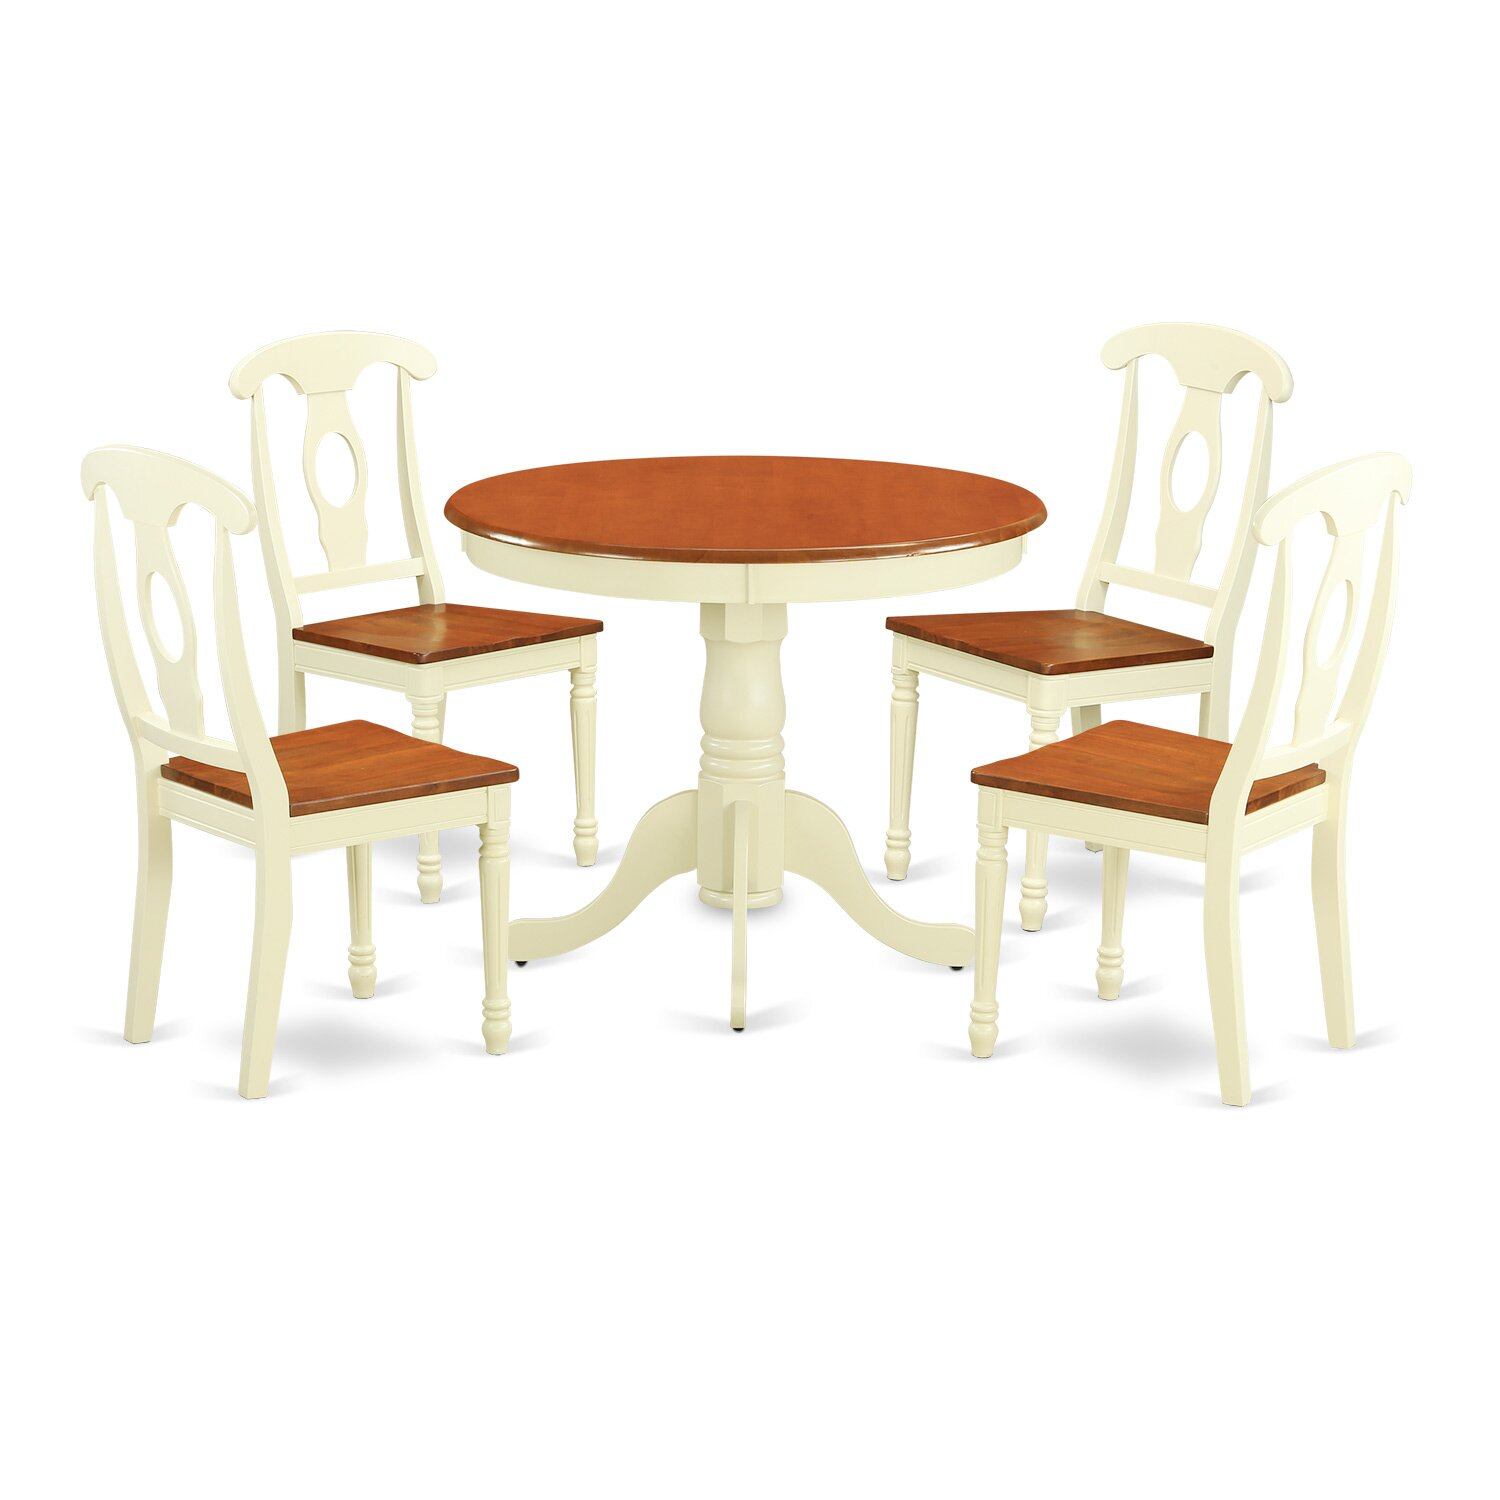 East west 5 piece dining set wayfair for Kitchen table and chairs set